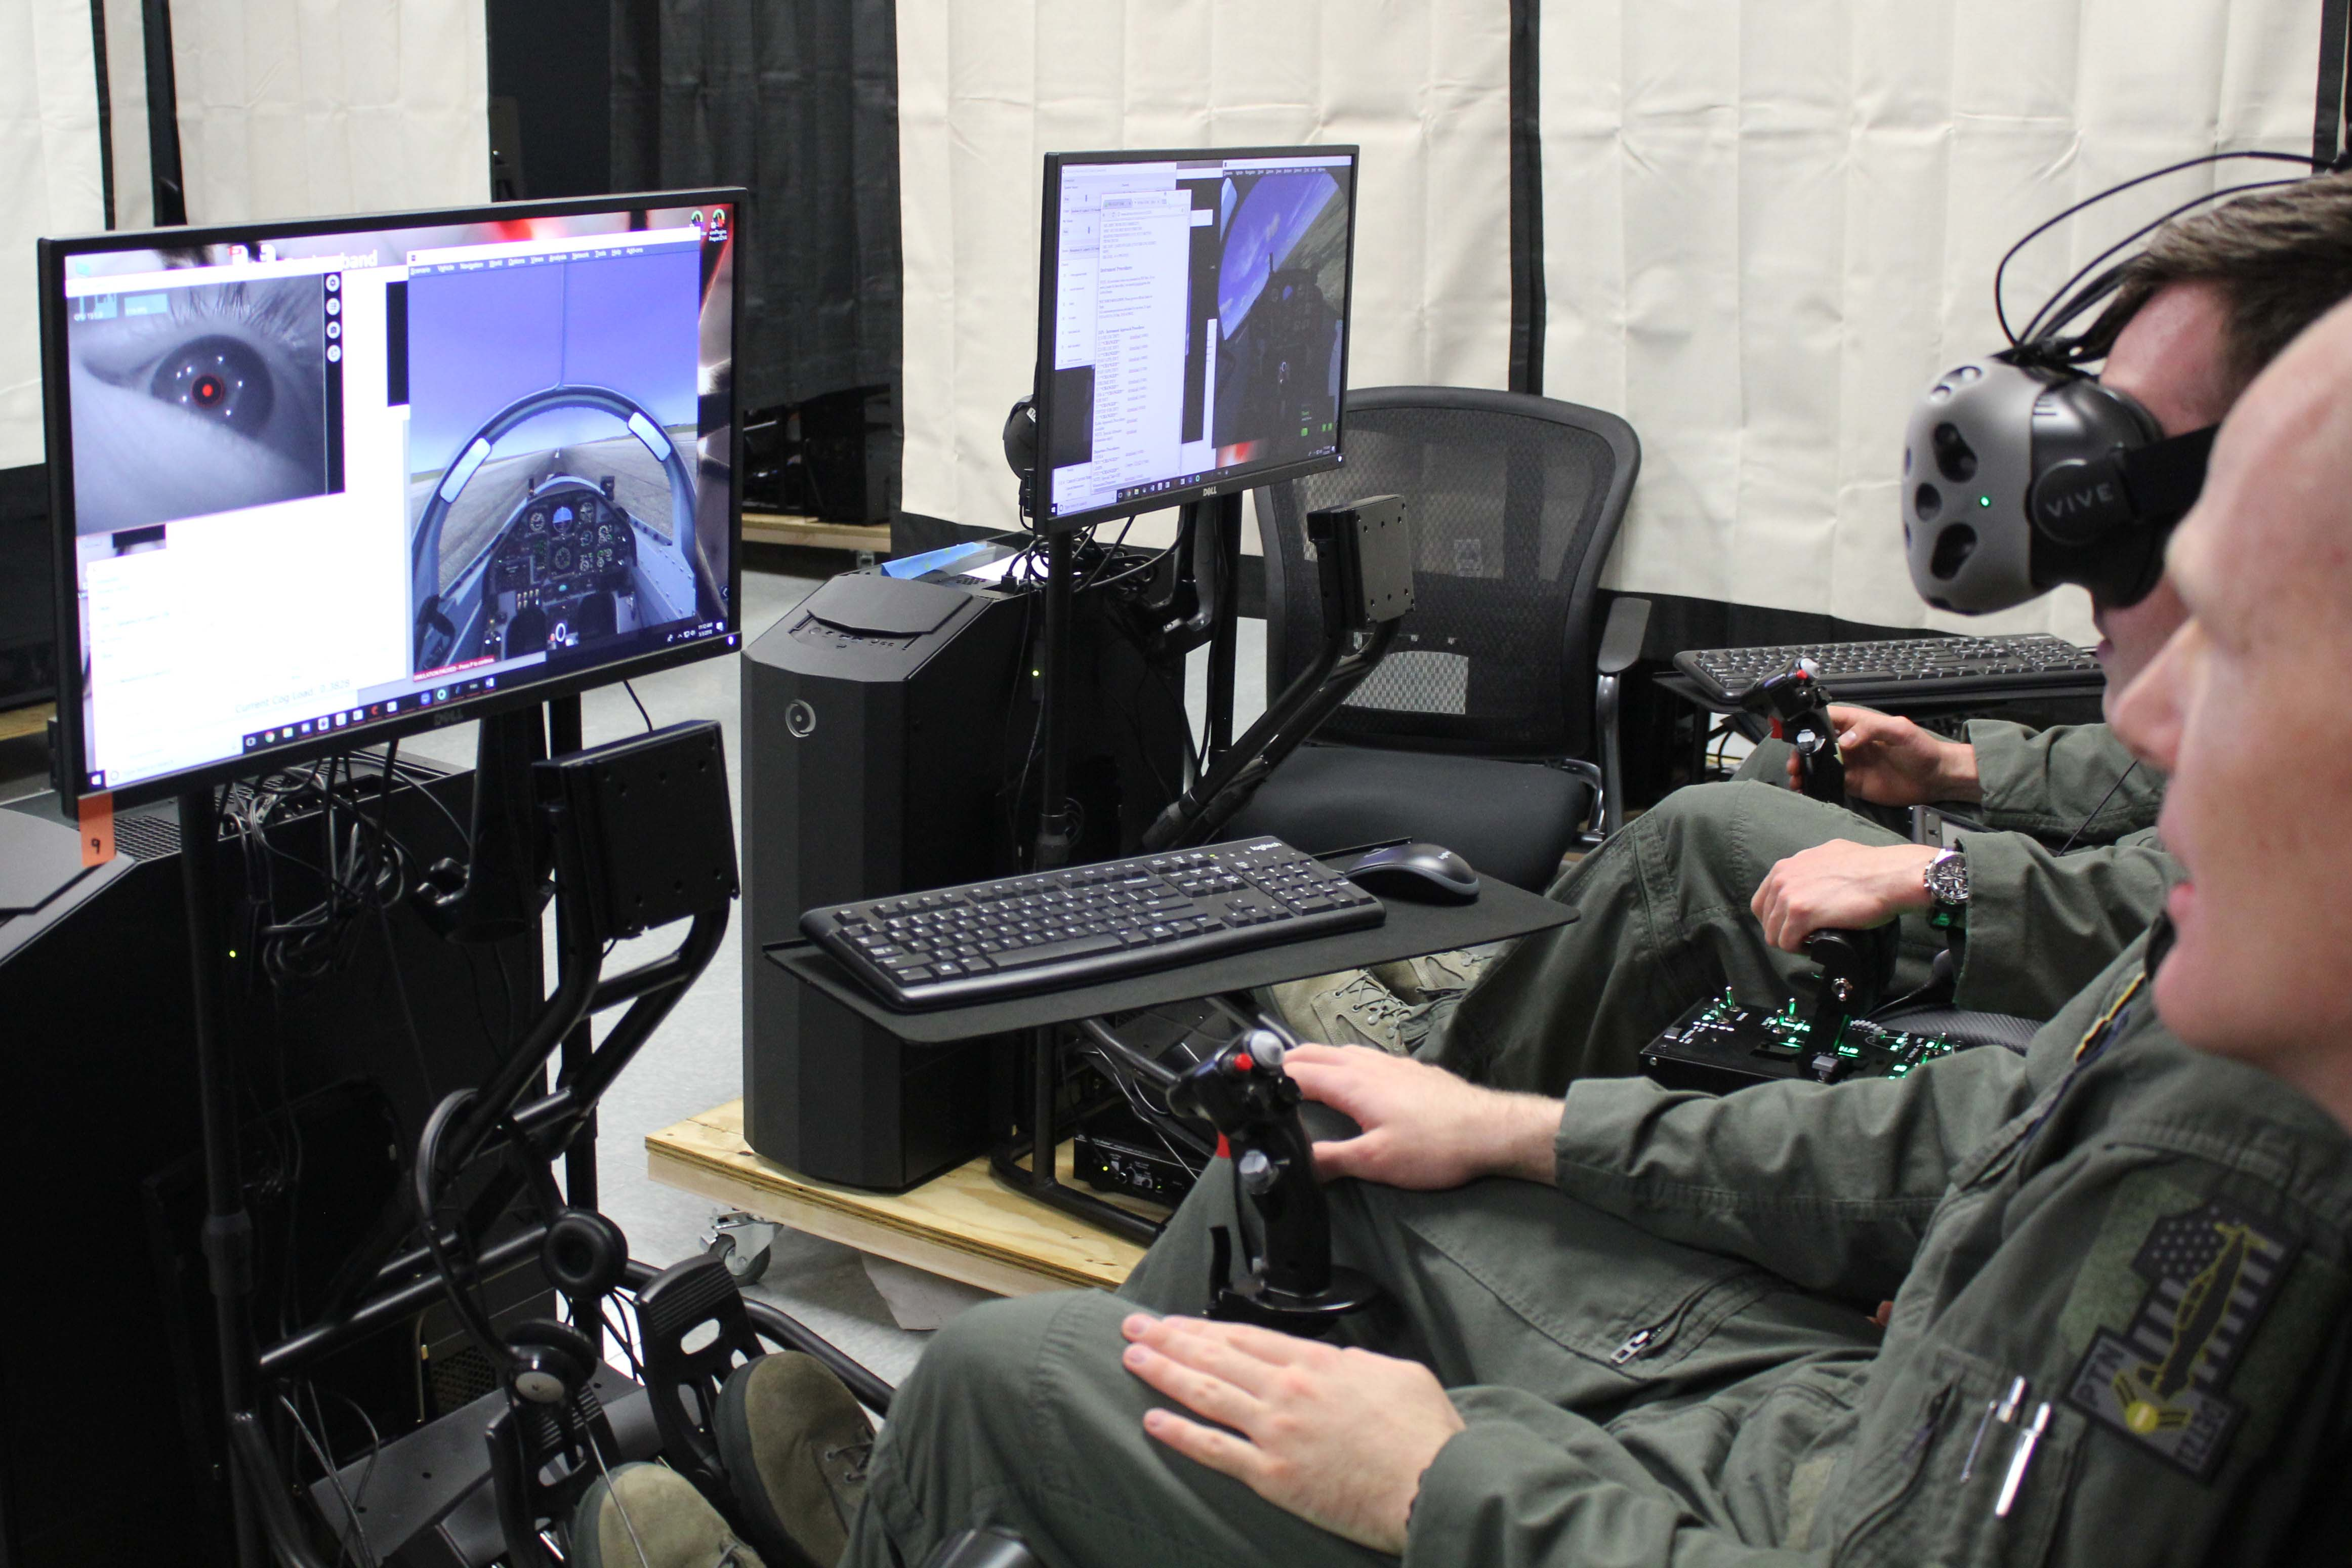 Caption: Airman 1st Class Jack Pepper (with goggles) attempts a maneuver on a simulator while Lt. Col. Paul Vicars looks on. Pepper is among the first participants in Pilot Training Next, which uses off-the-shelf virtual reality technology., Credit:  Carson Frame / American Homefront